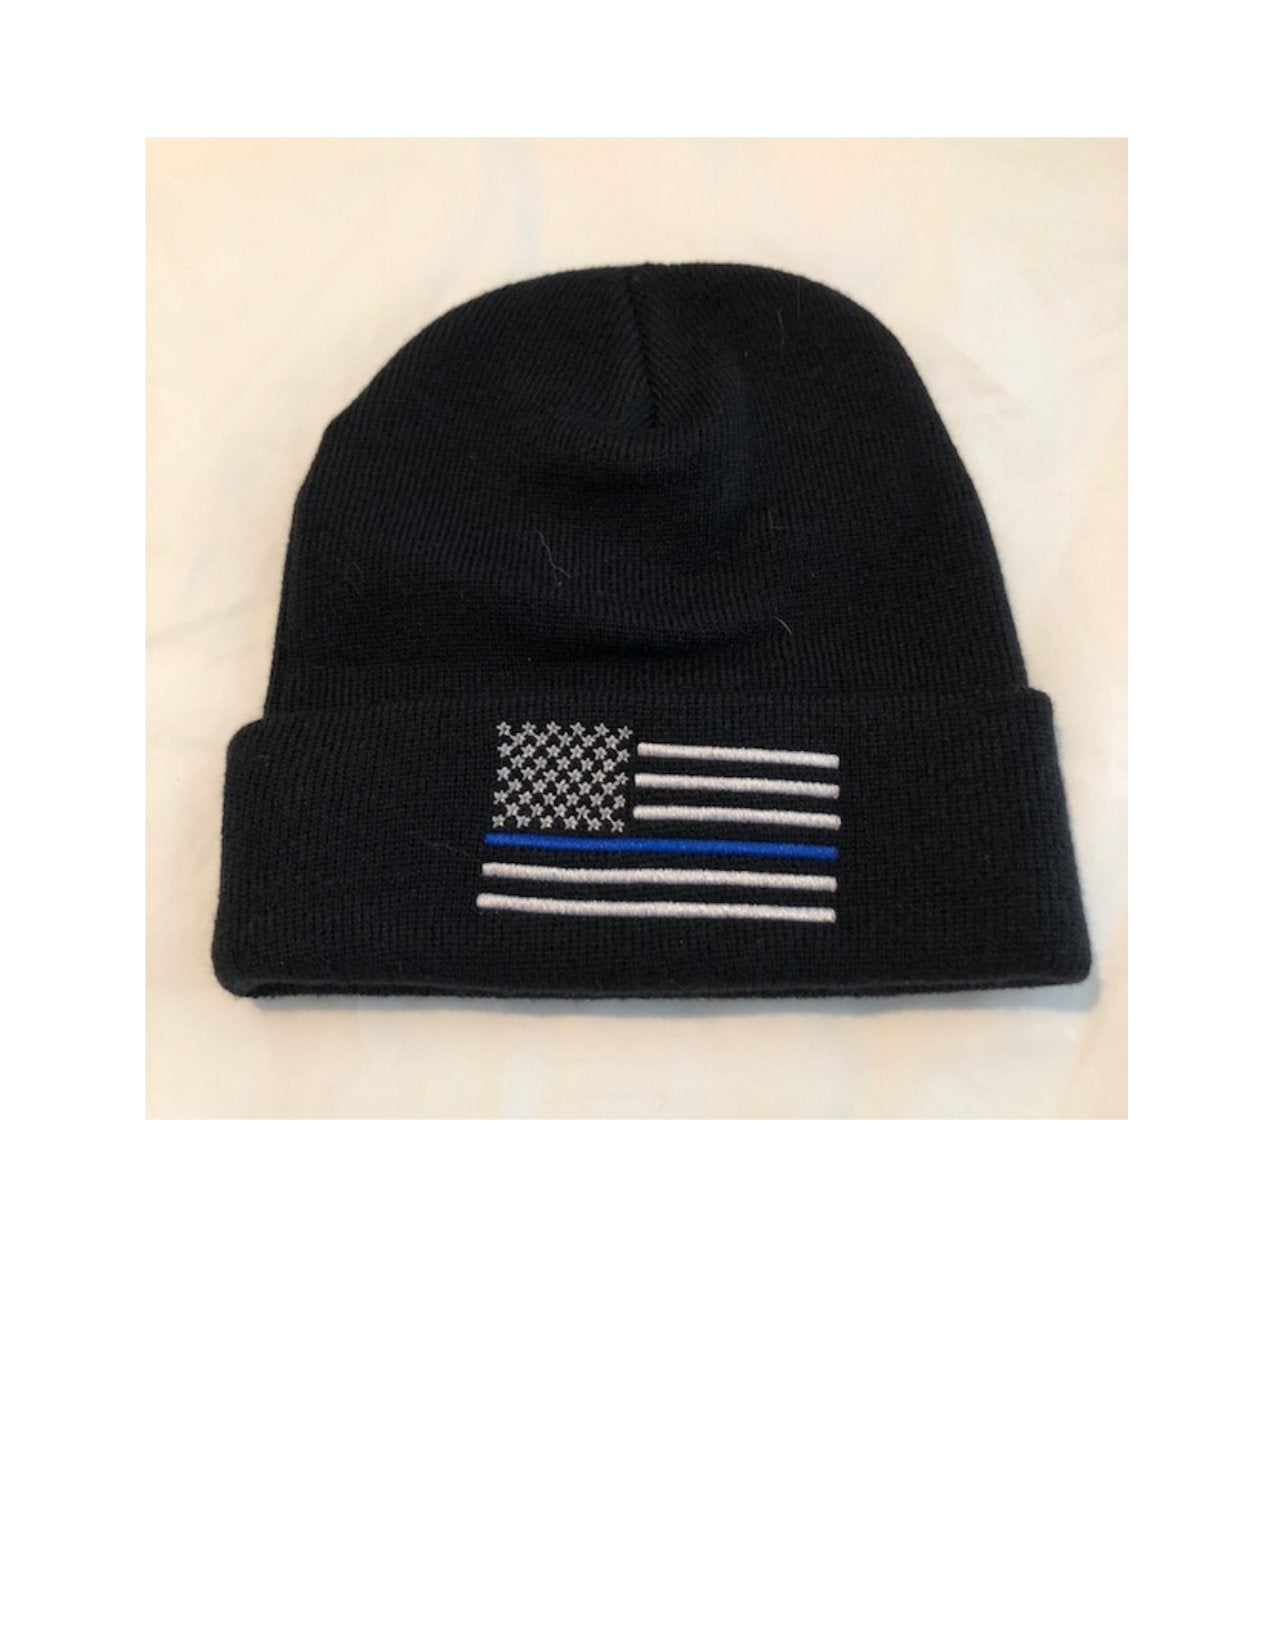 bdc9df1d18d Thin BLUE Line American Flag Winter Watch Hat - Project Thin Line